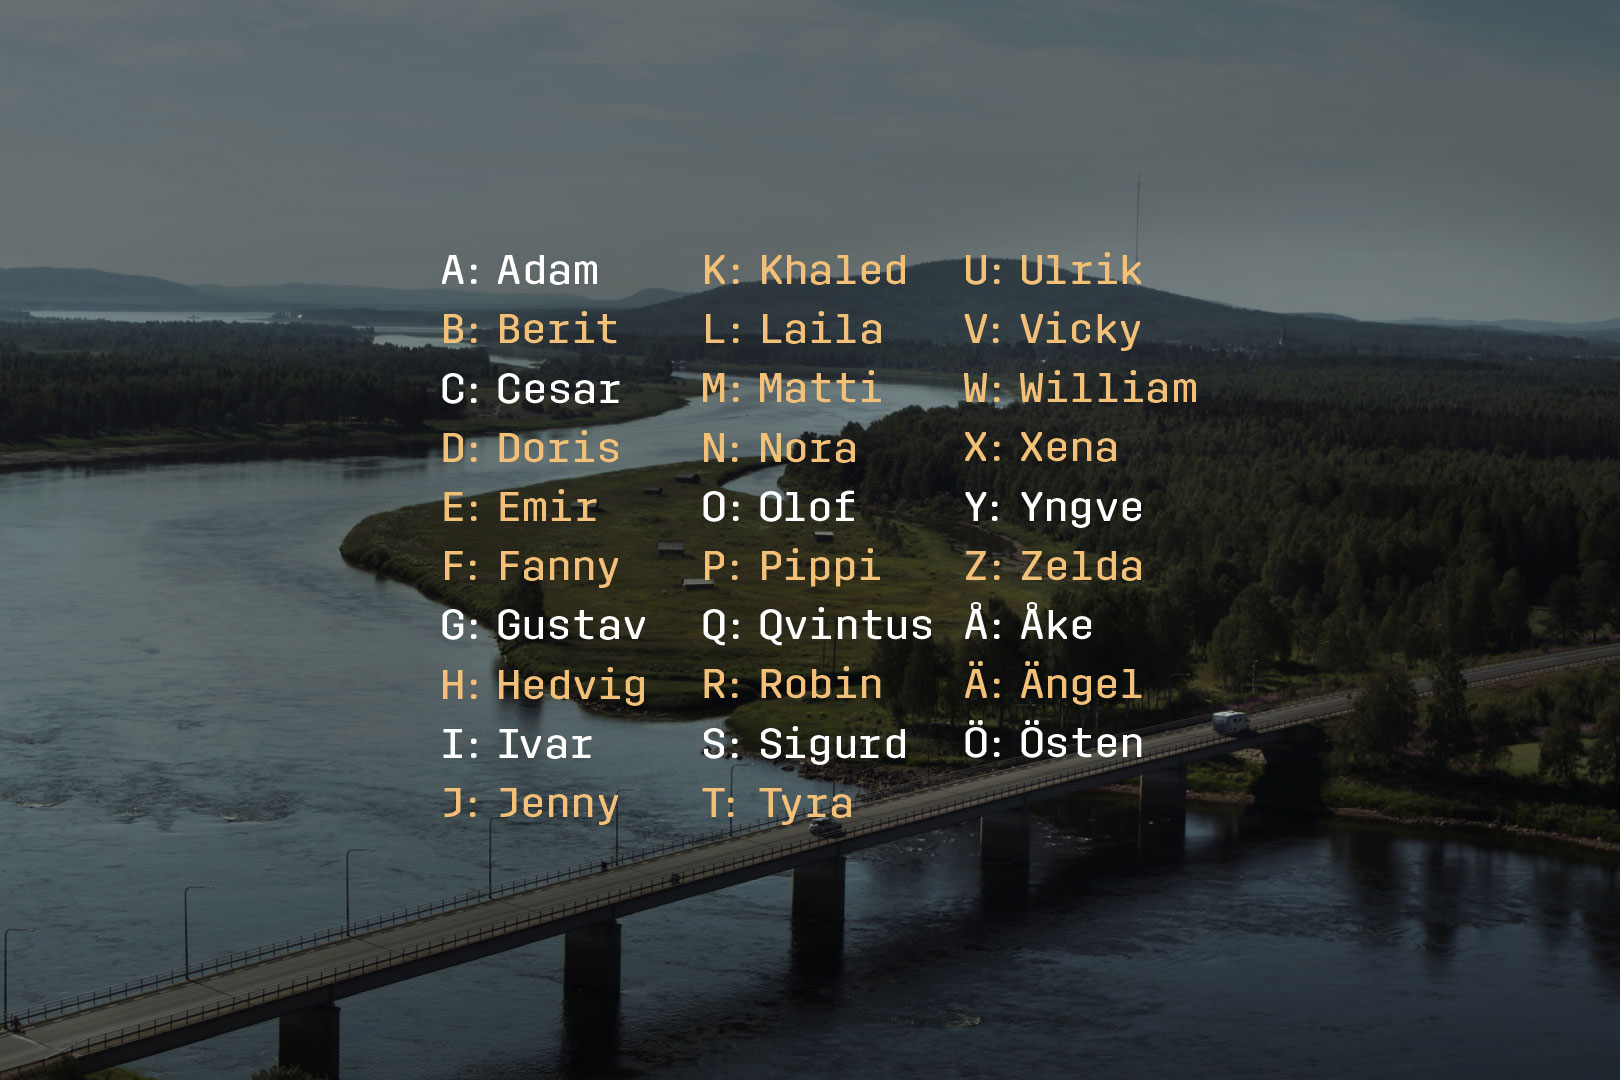 This campaign to shake up the Swedish spelling alphabet sparked a gender equality debate